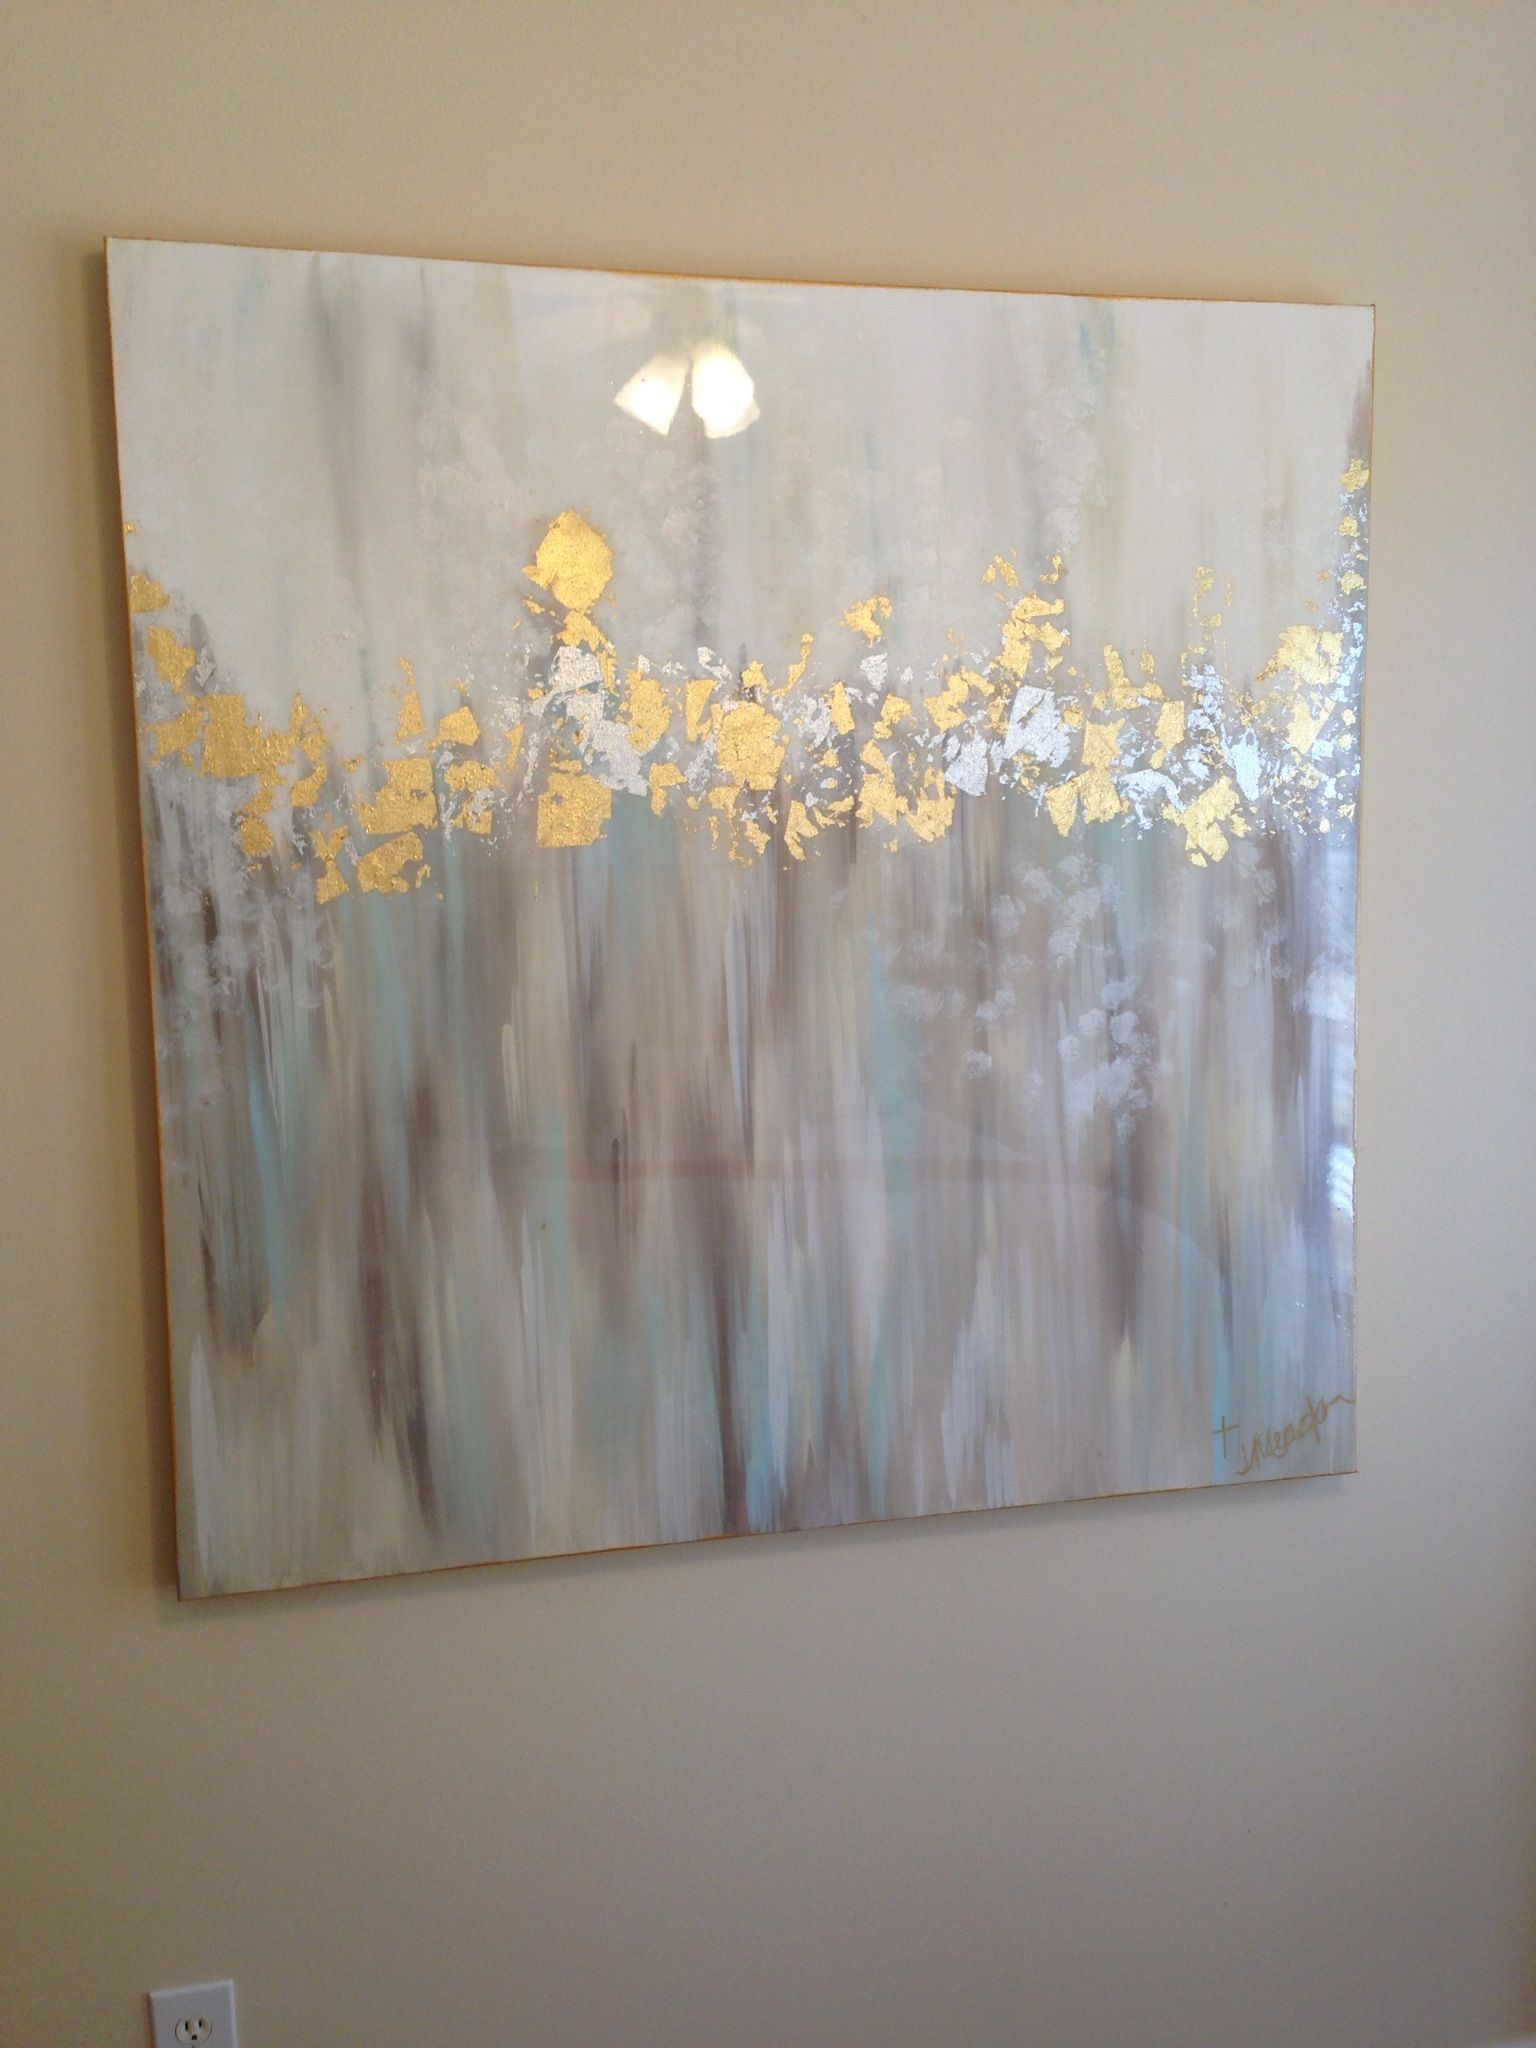 Grey White Silver Bedroom: White, Gray, Blue, Gold And Silver Abstract Art 48x48 By